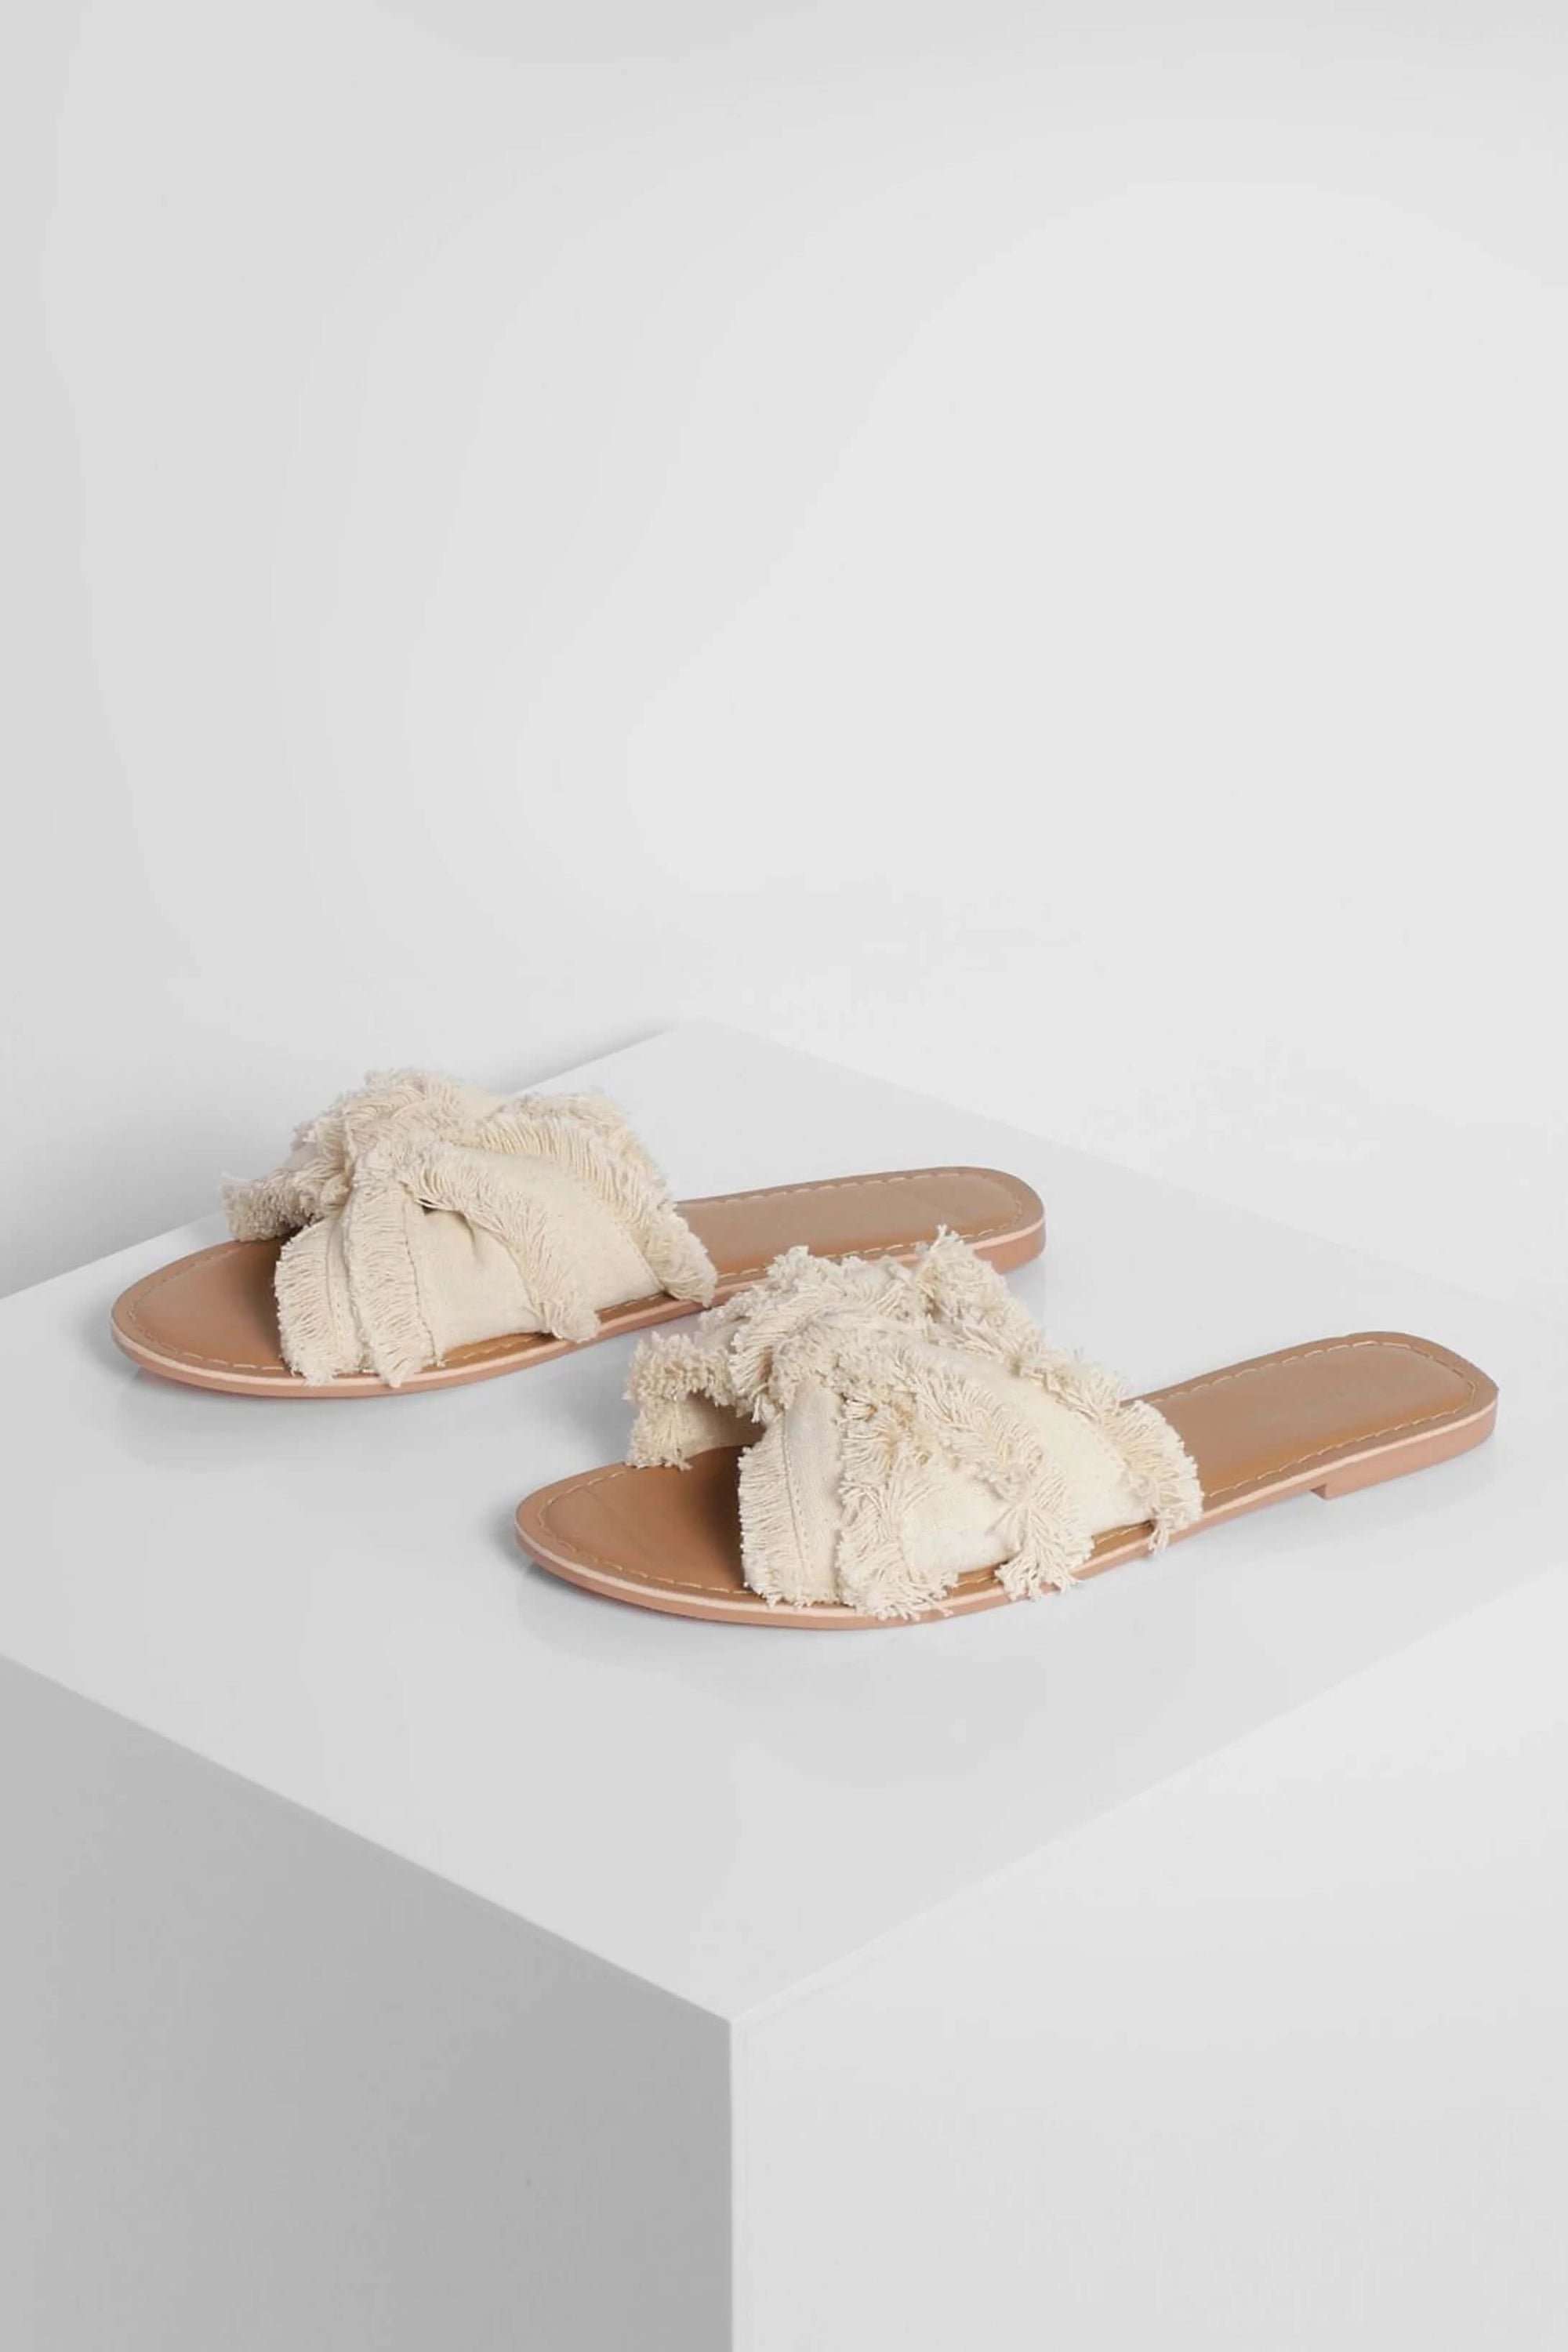 Canvas beige slide boho and casual style, espadrilles type and with fringed details.